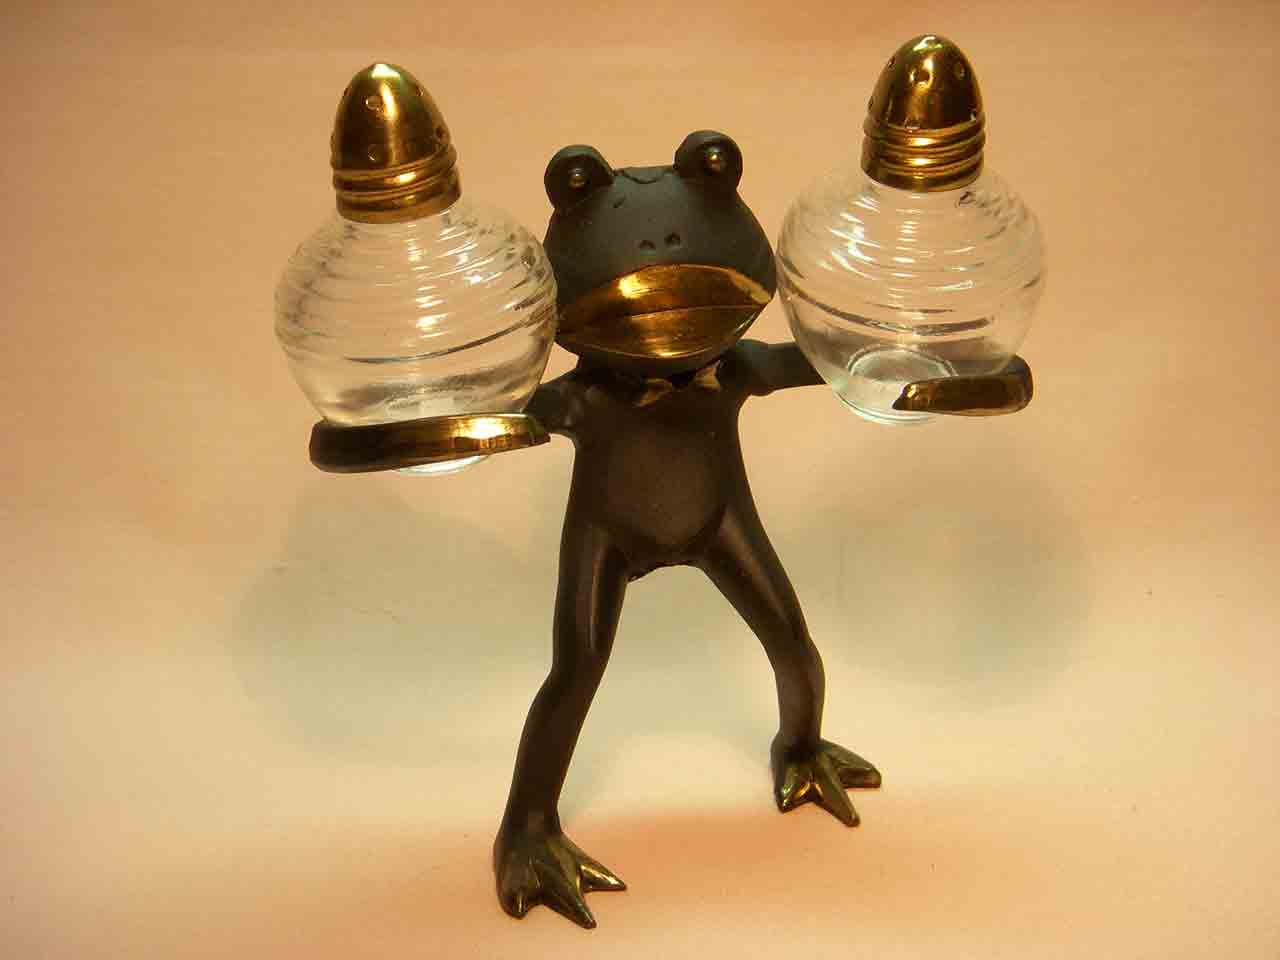 Metal frog carrier salt and pepper shakers